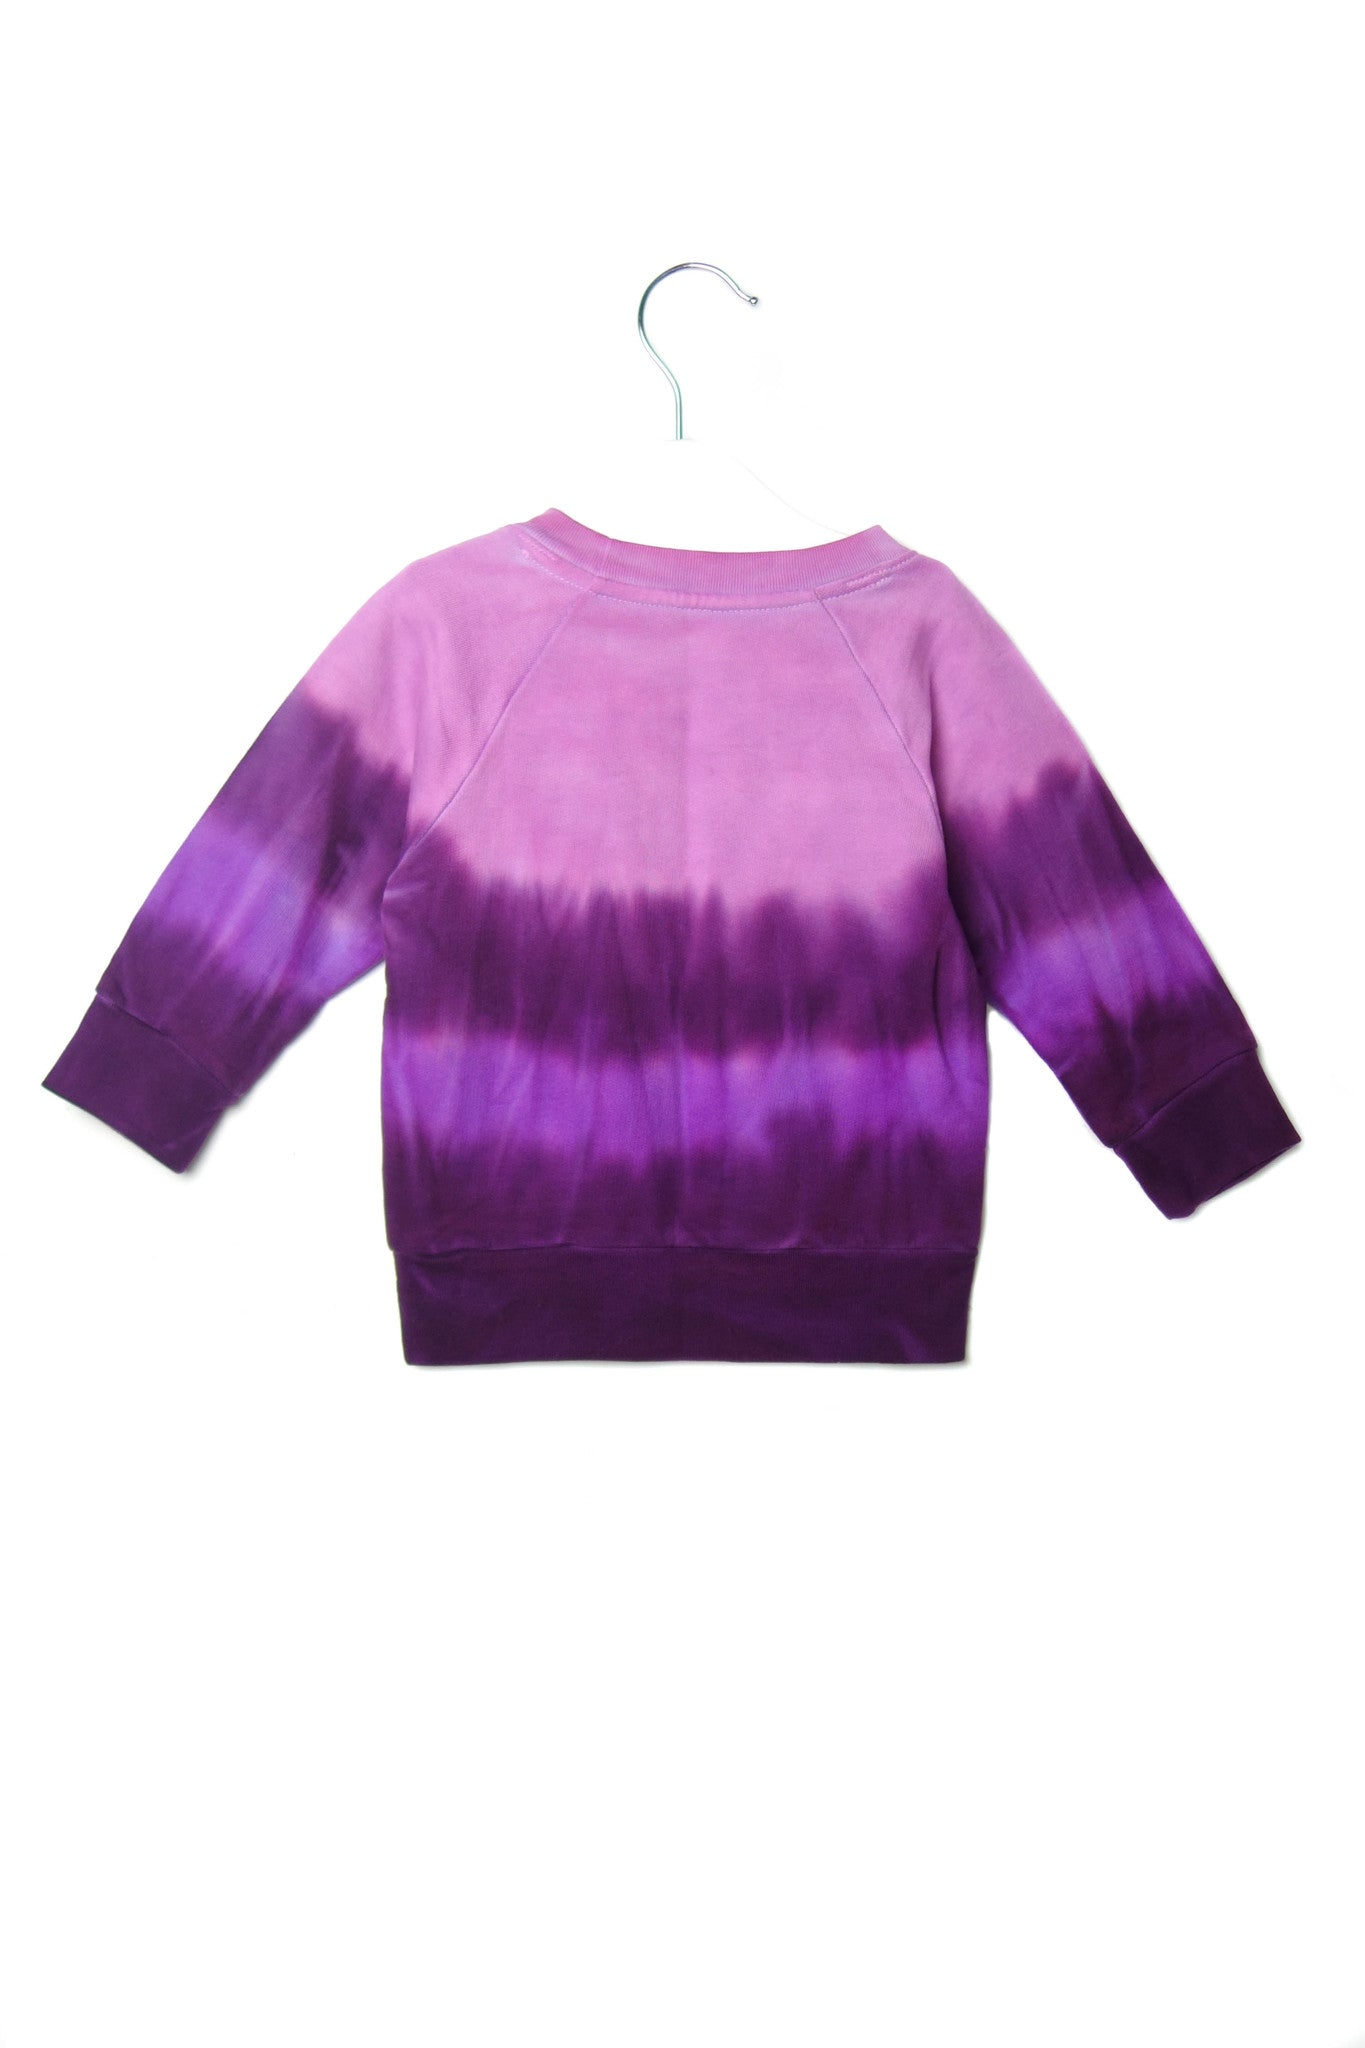 10001398~Sweatshirt 6-12M, Peek at Retykle - Online Baby & Kids Clothing Up to 90% Off